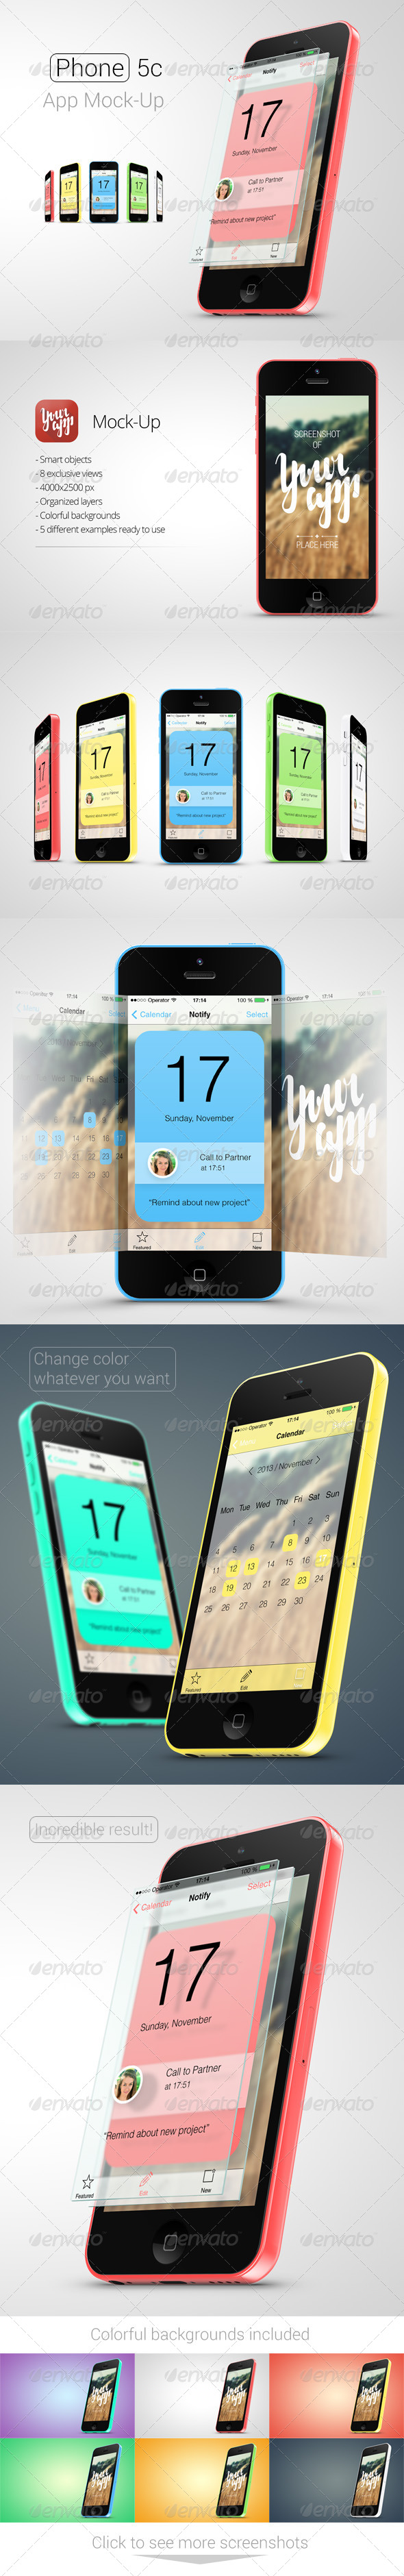 GraphicRiver Phone 5c App Mock-Up 6176381